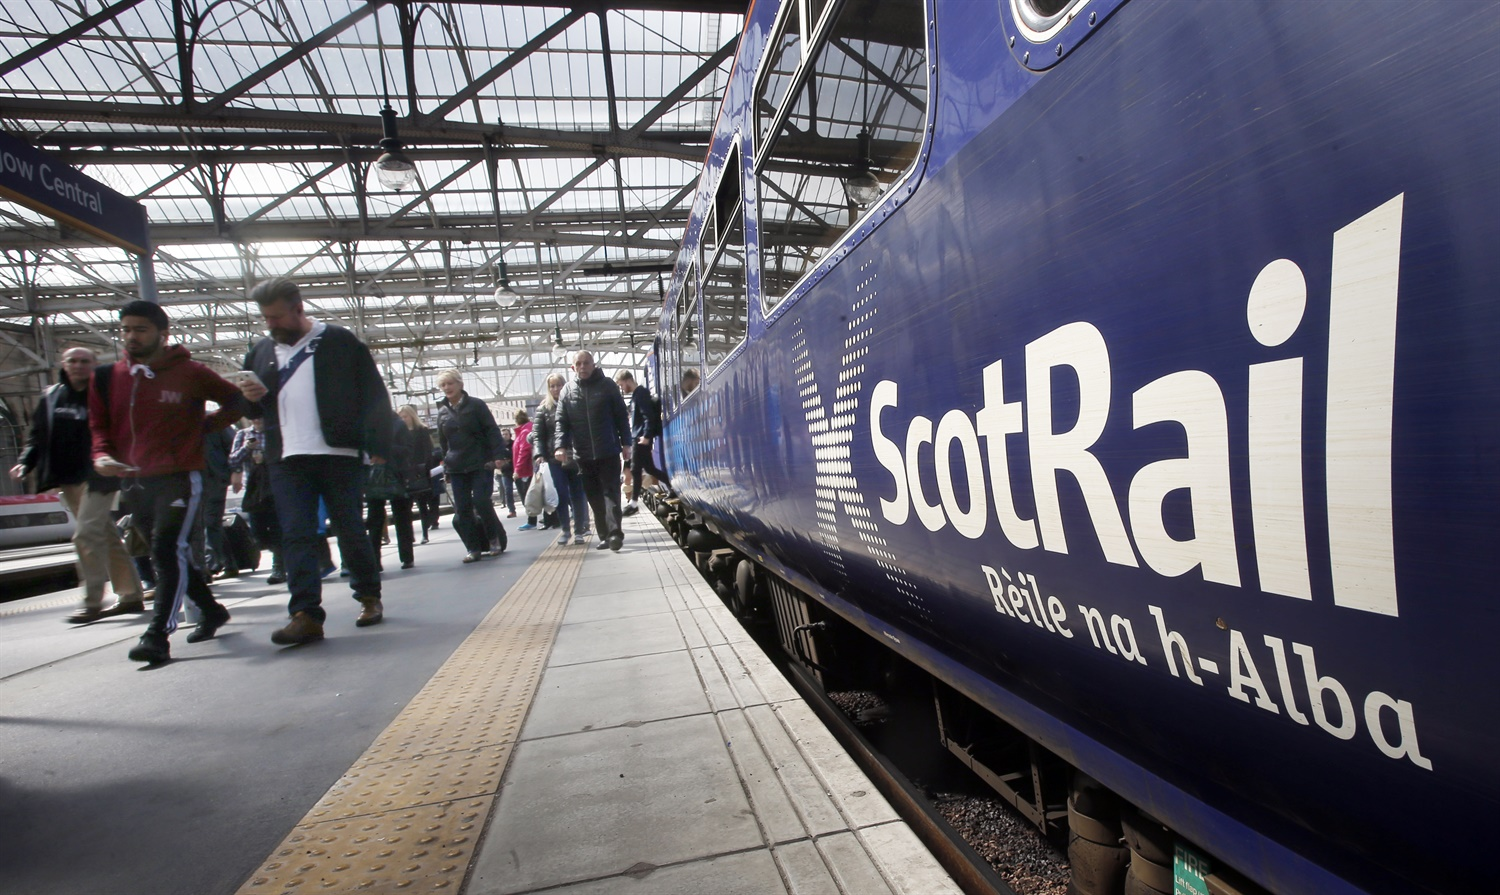 ScotRail announces new train station retail opportunities